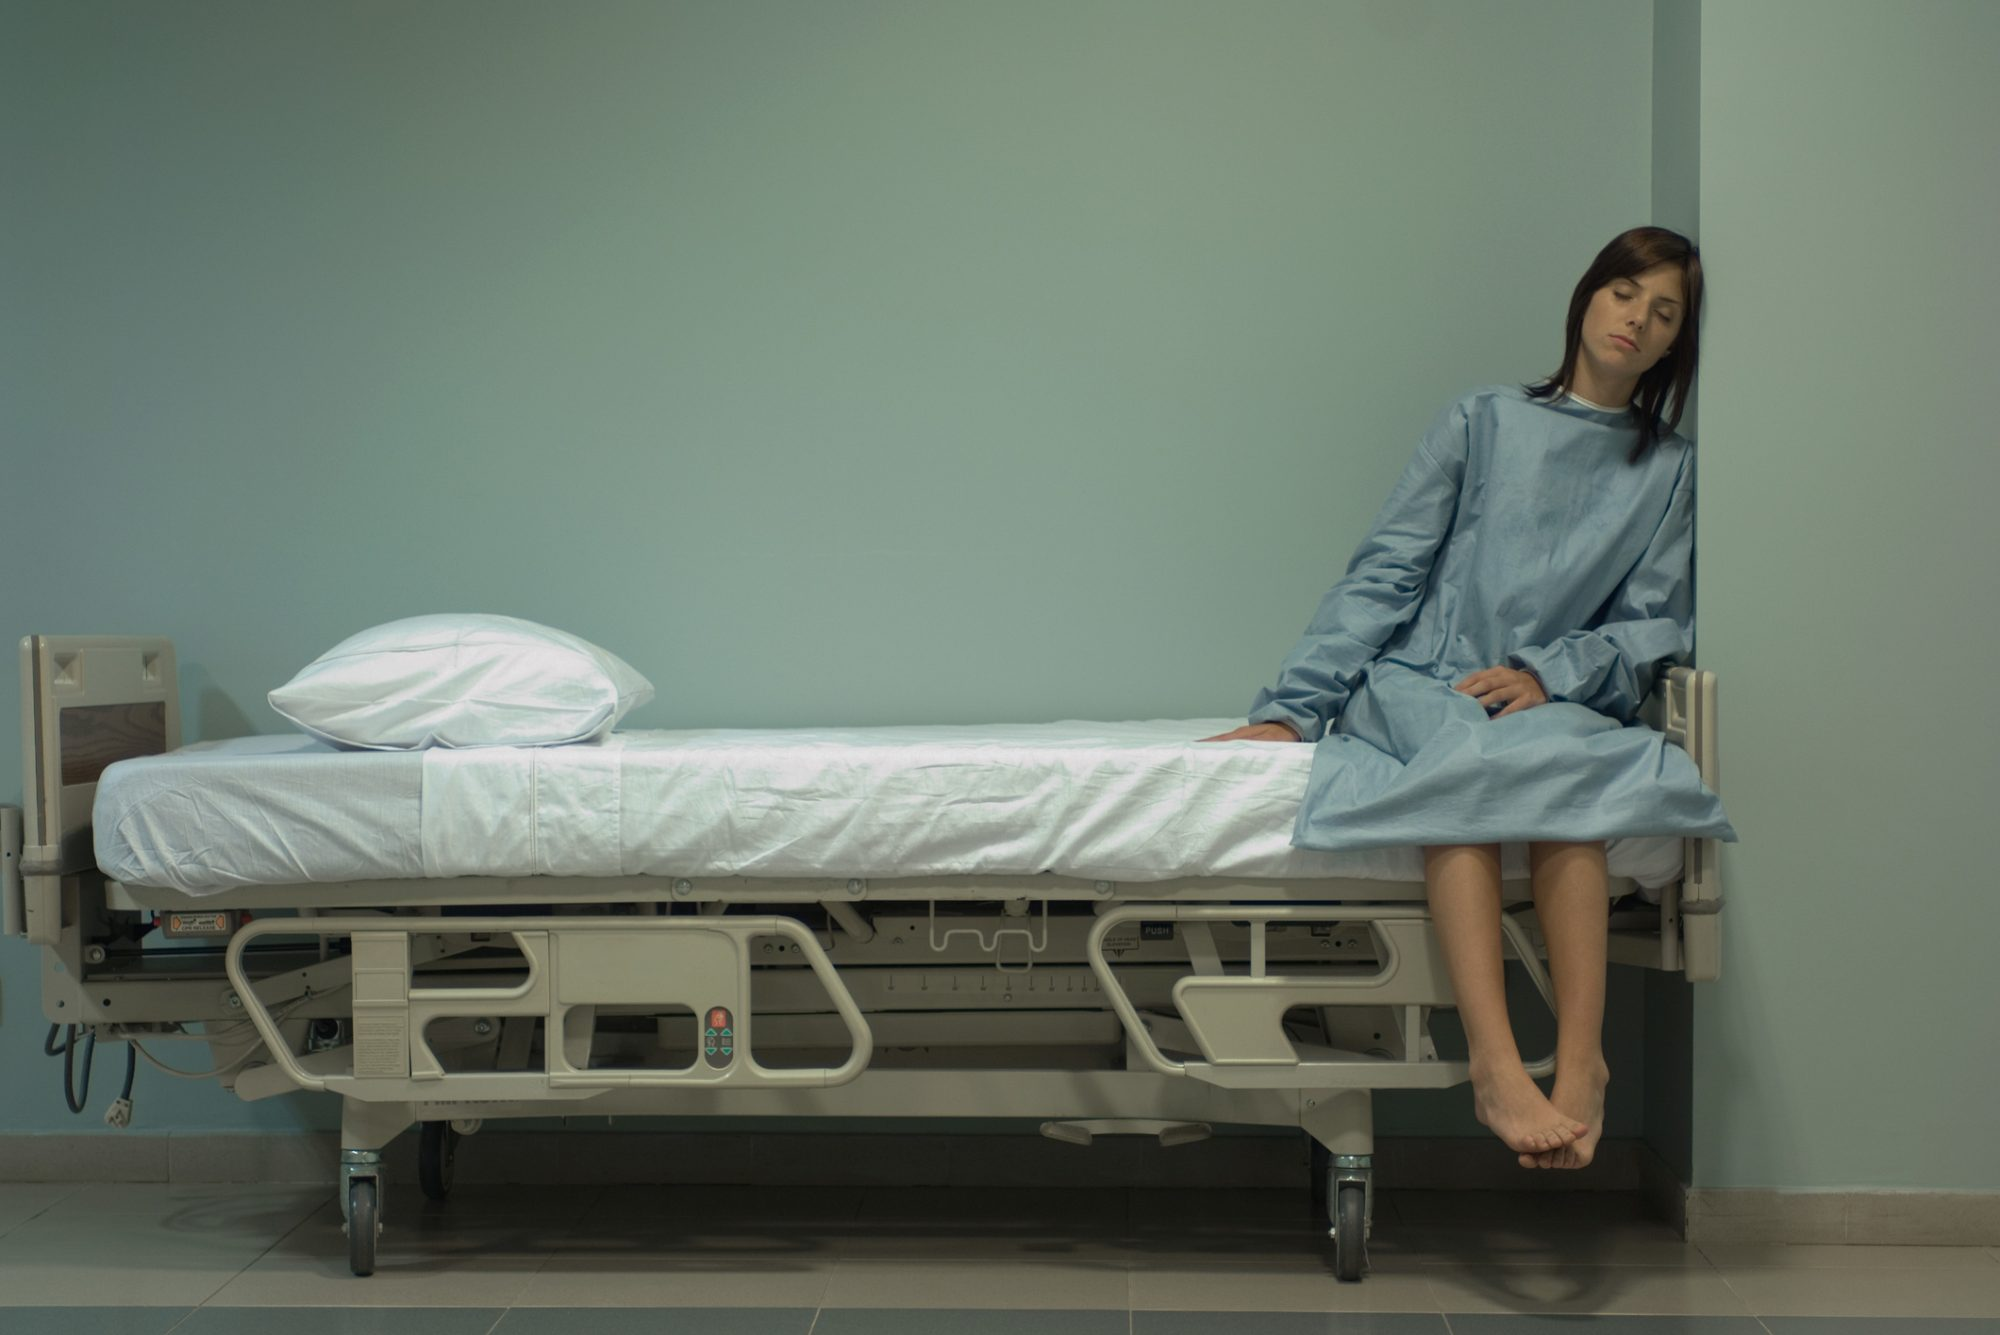 Female patient sitting on hospital bed with eyes closed, leaning head against wall